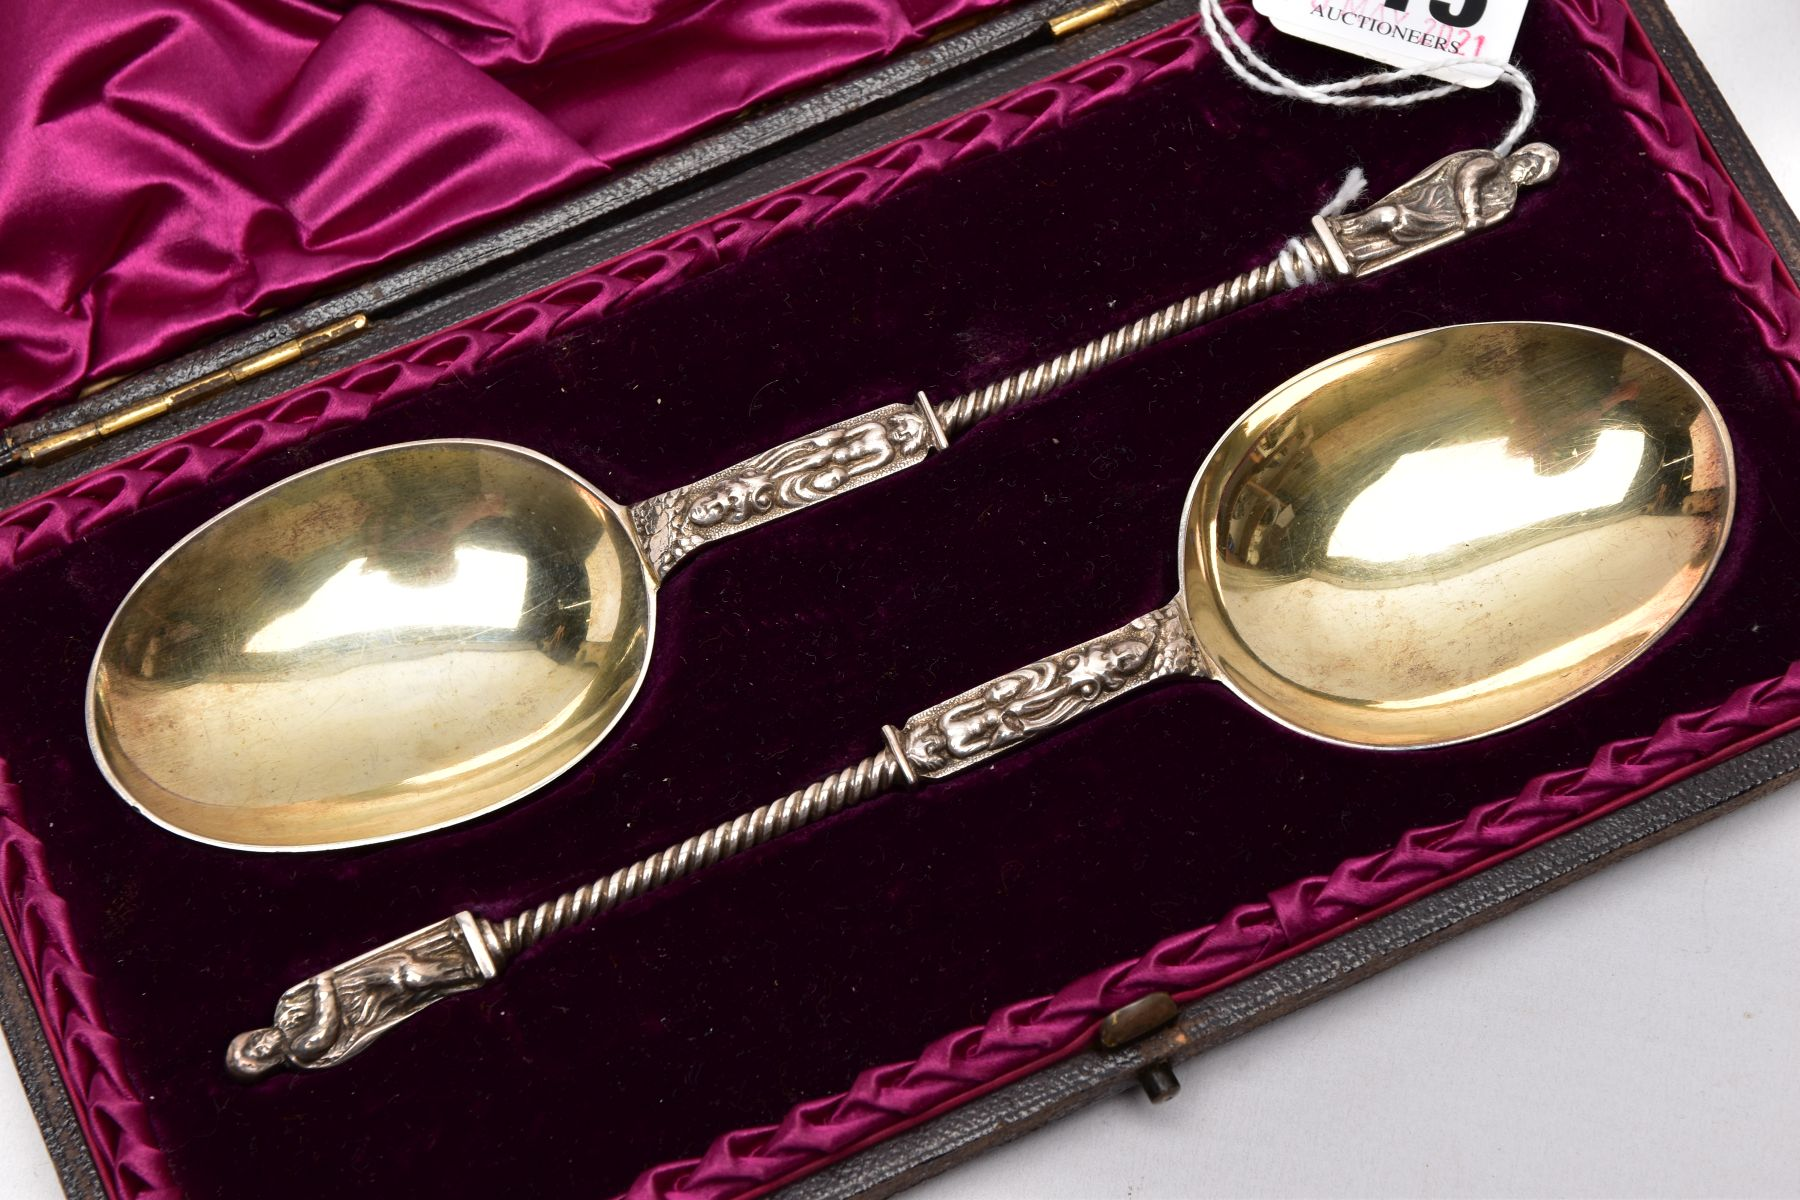 A CASED TWO PIECE LATE VICTORIAN SILVER GILT SPOON SET, brown case opens to reveal a purple velvet - Image 2 of 4